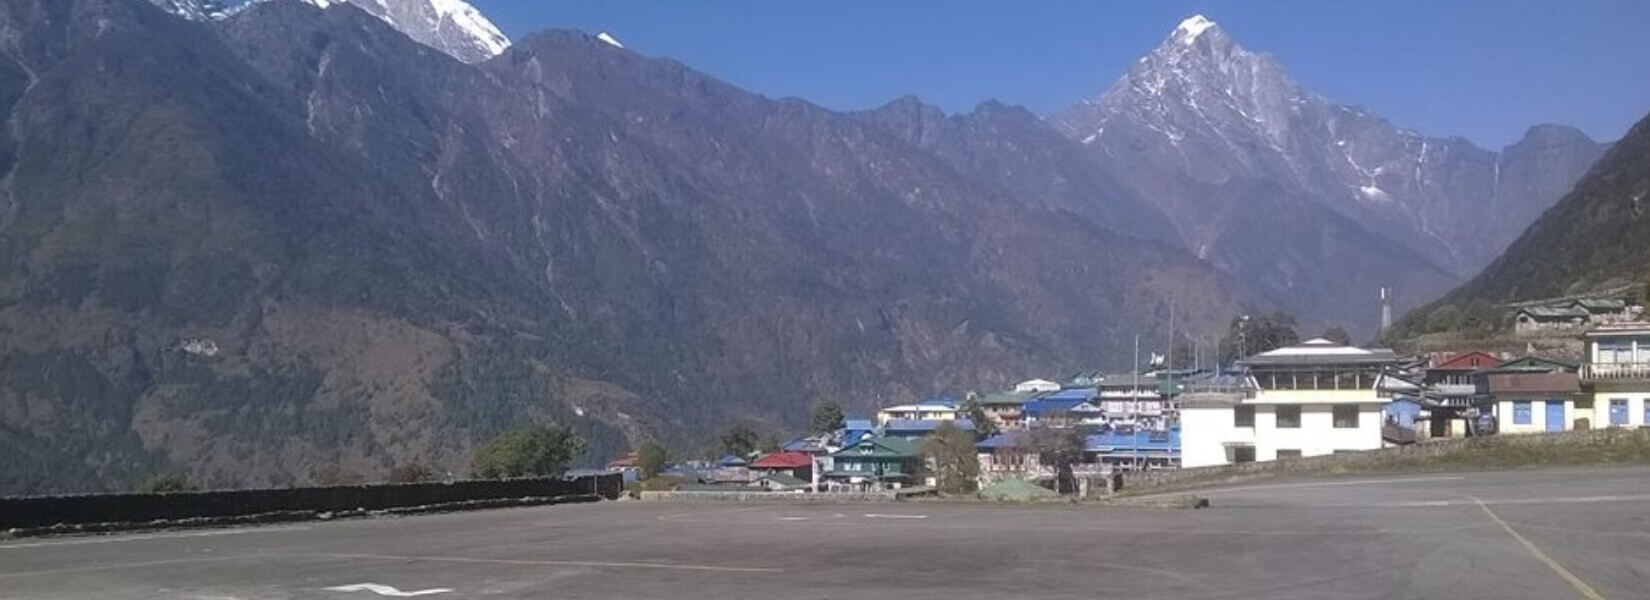 Lukla to Everest Base Camp